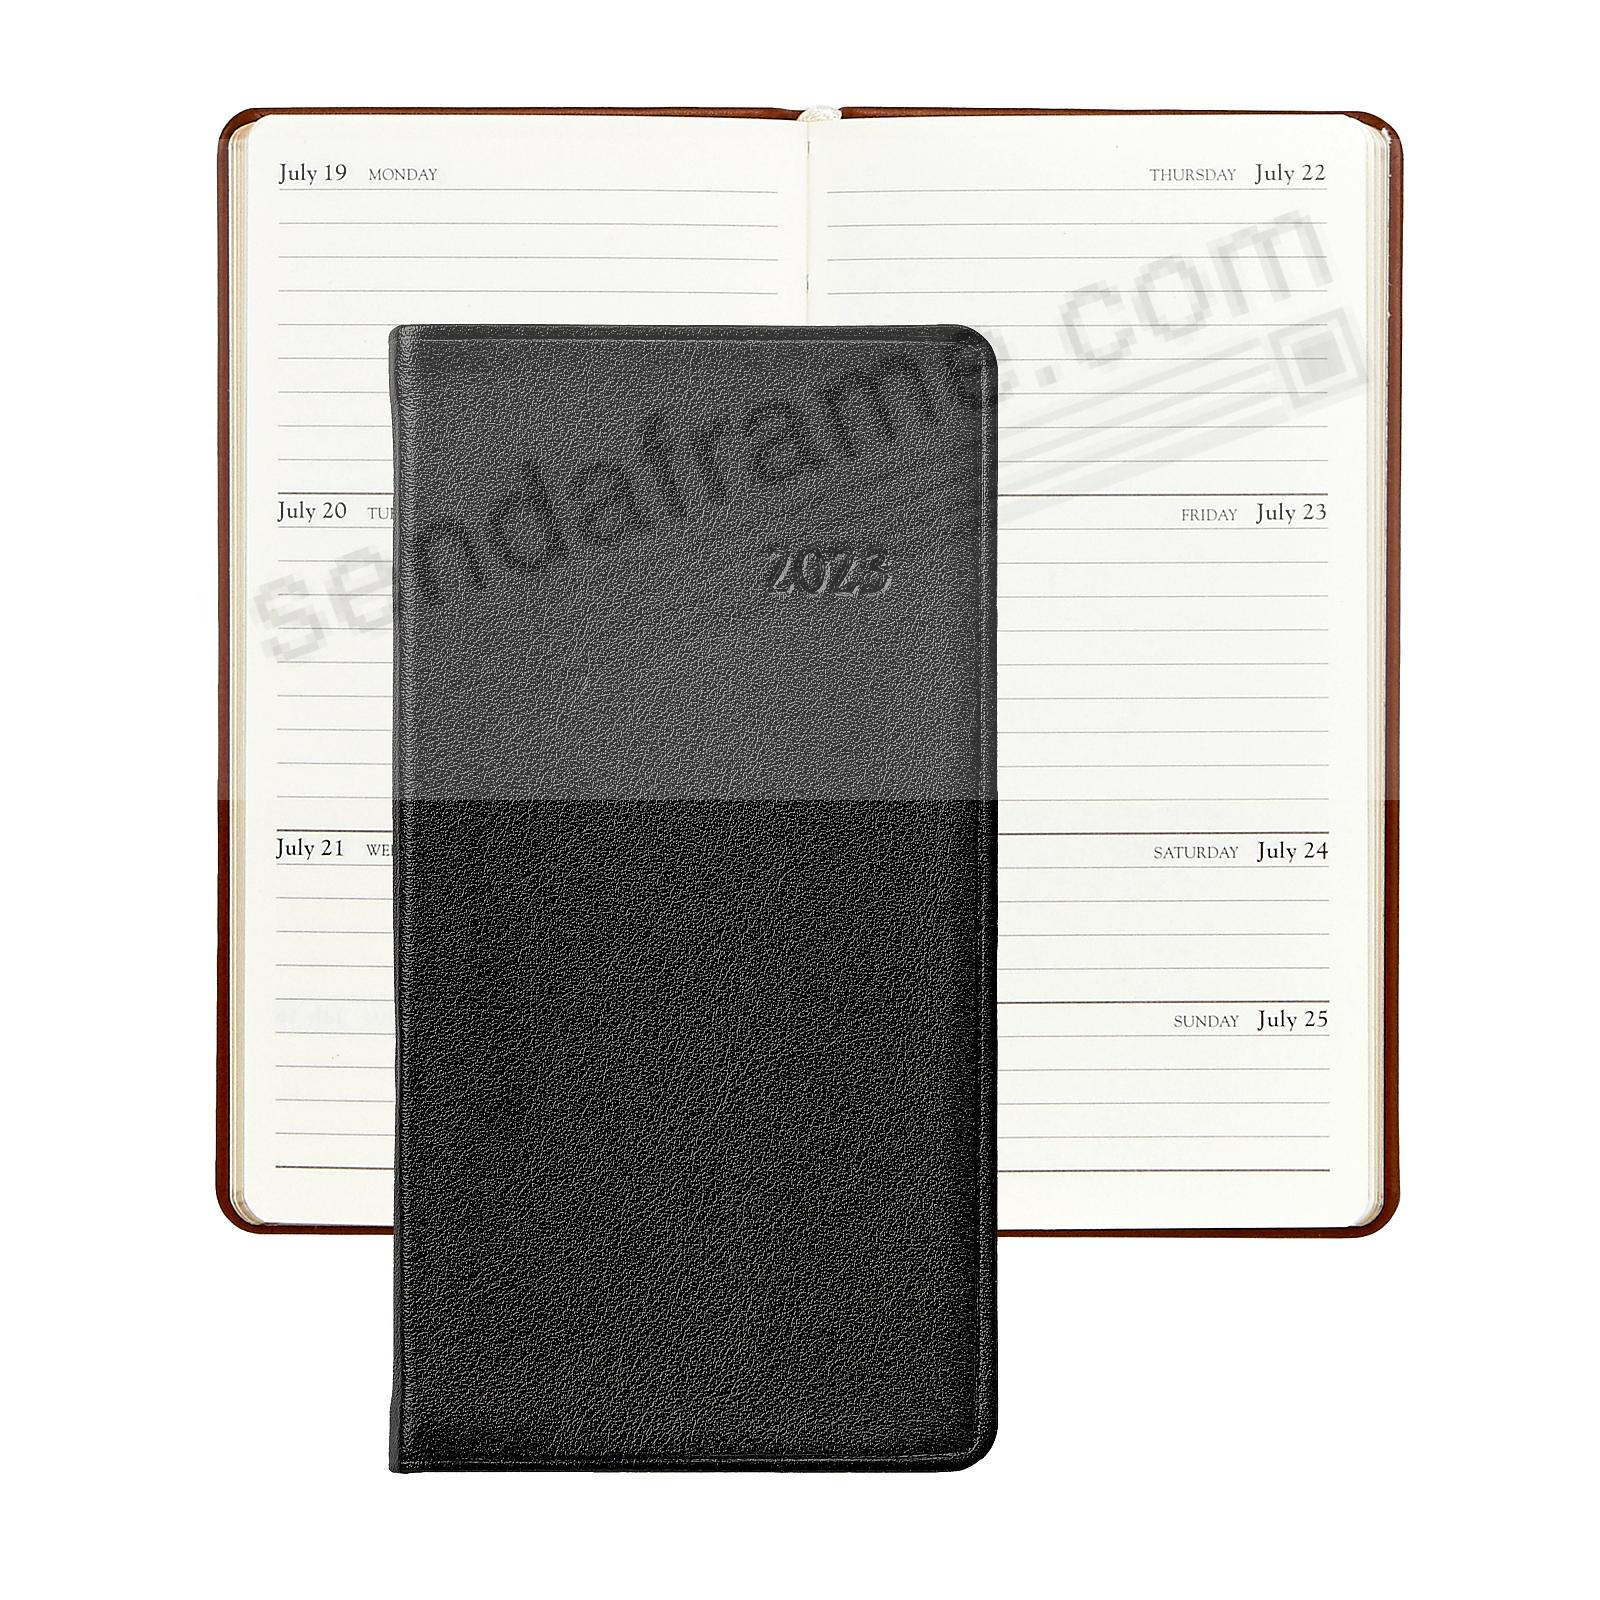 2018 TRADITIONAL BLACK 6in Pocket Datebook Diary Calfskin Leather by Graphic Image™